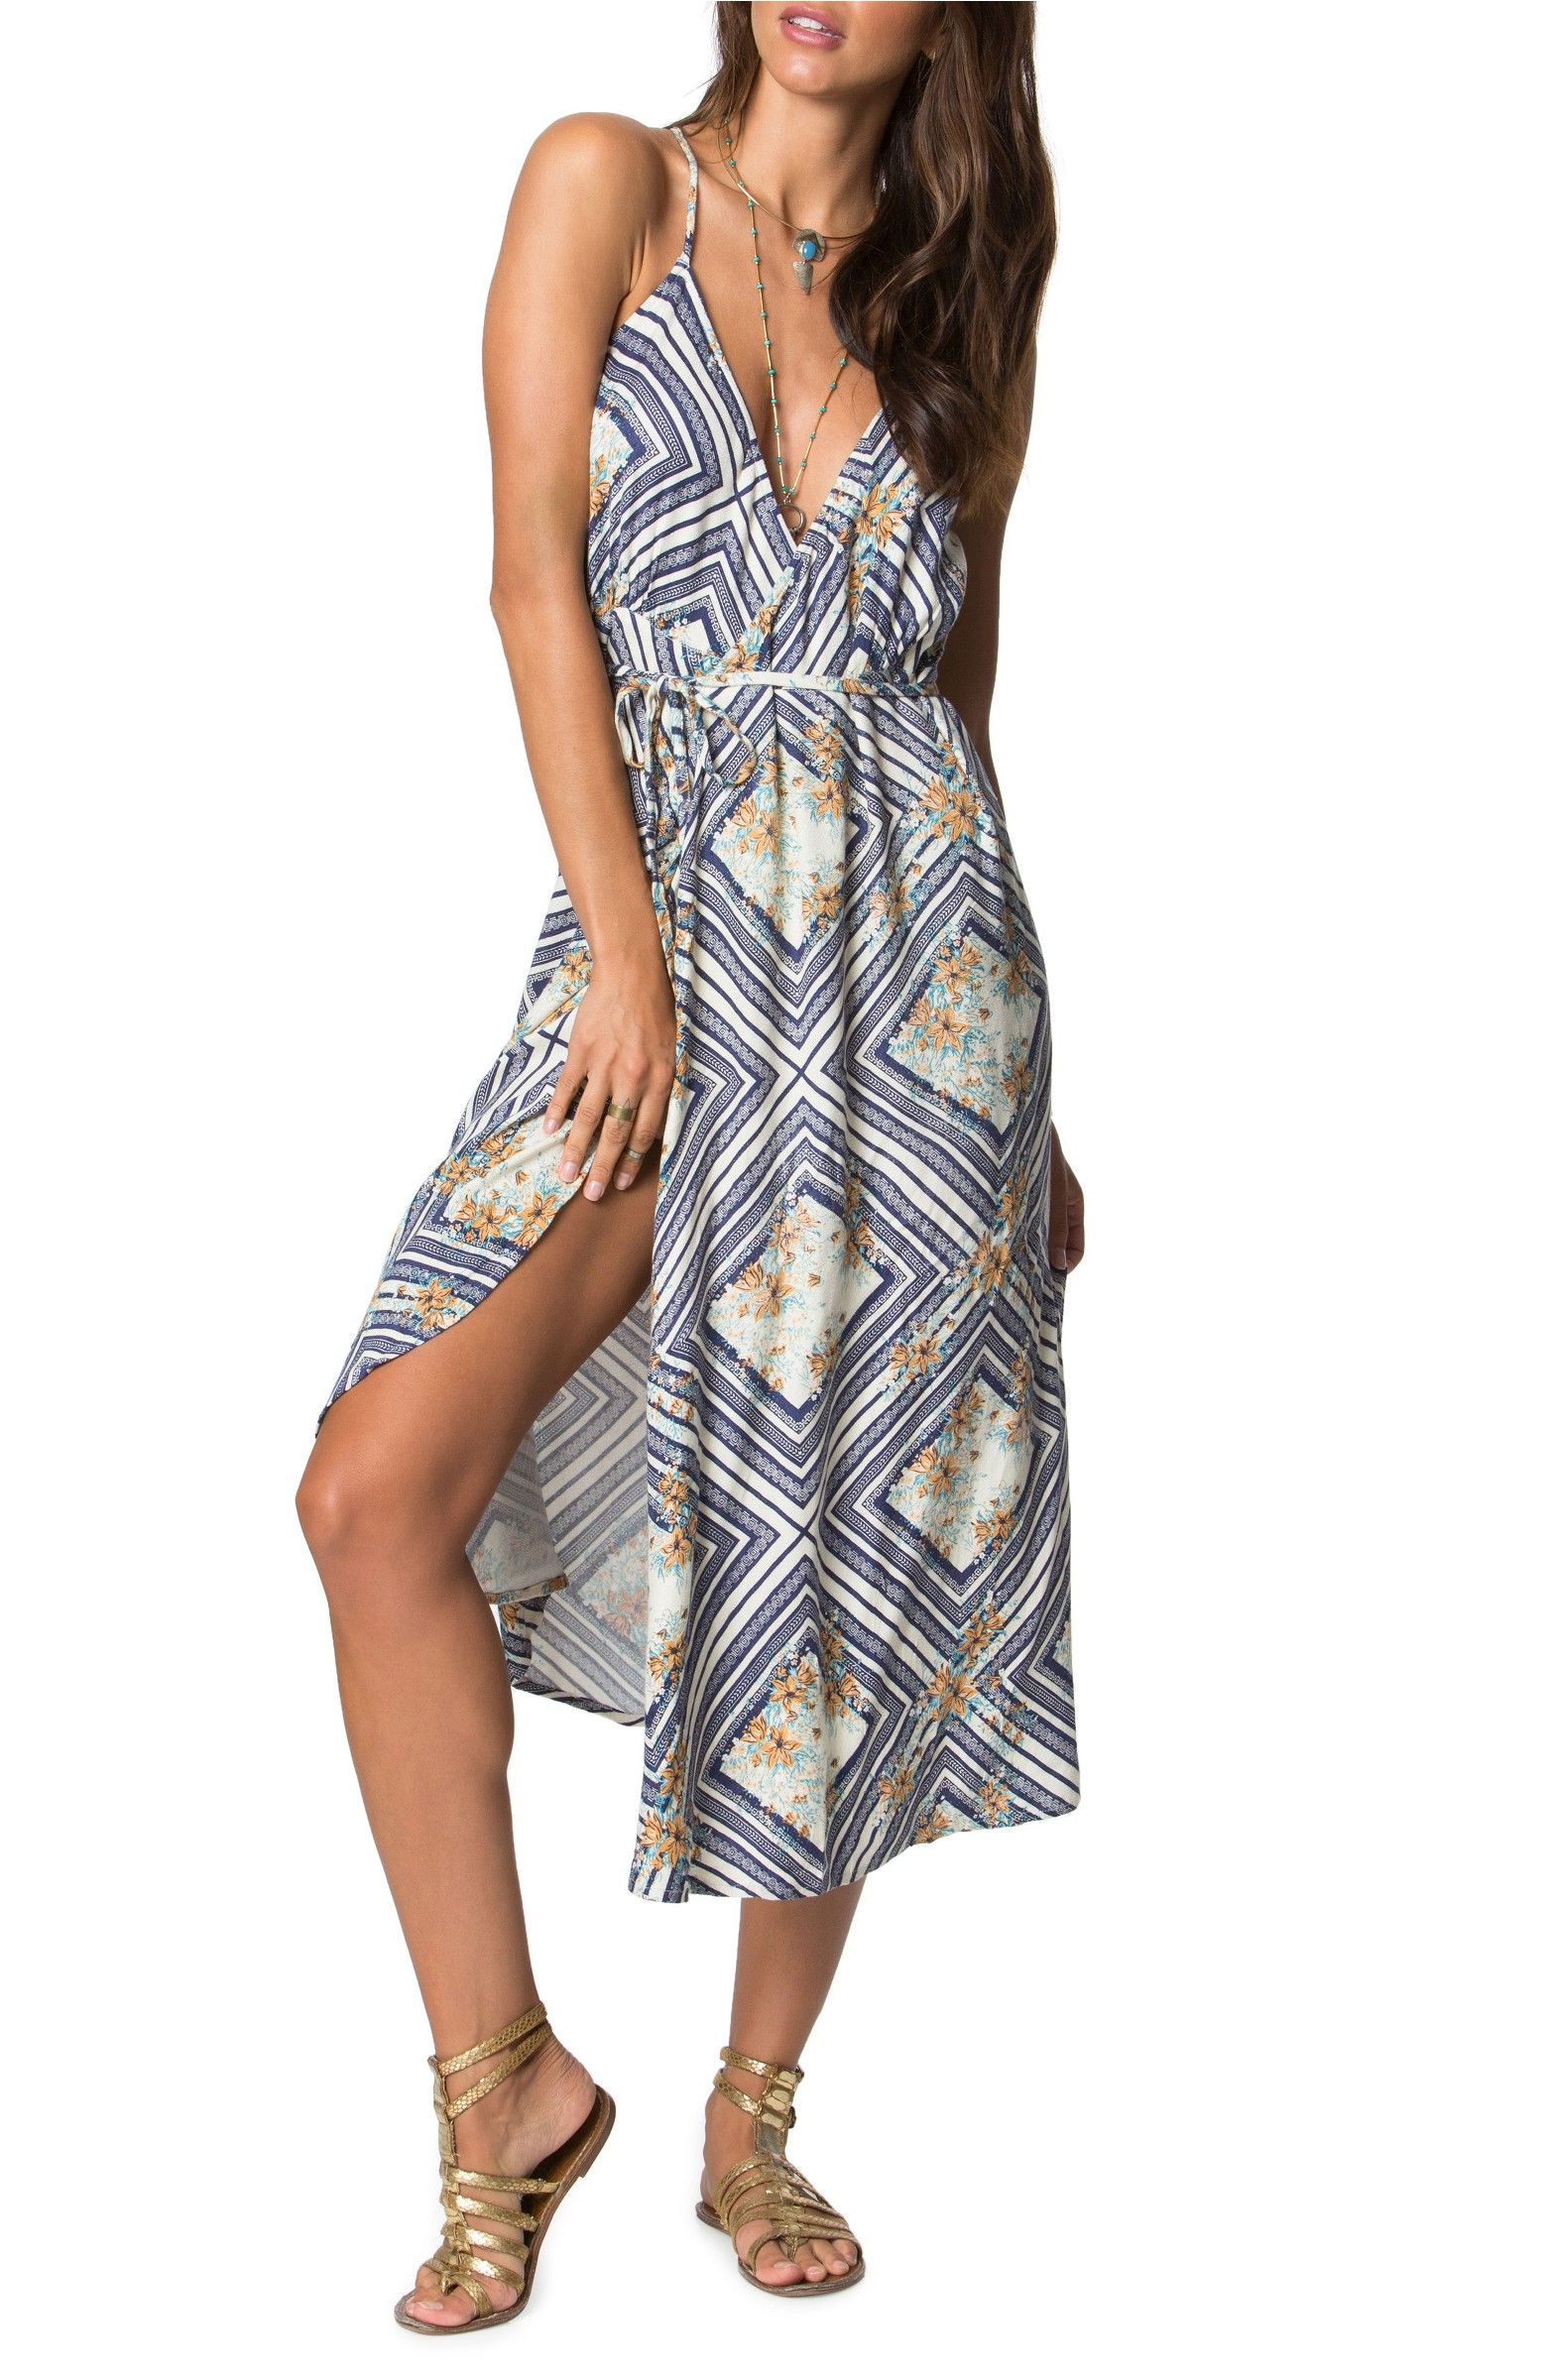 Main image ouneill leelee midi wrap dress wedding pinterest